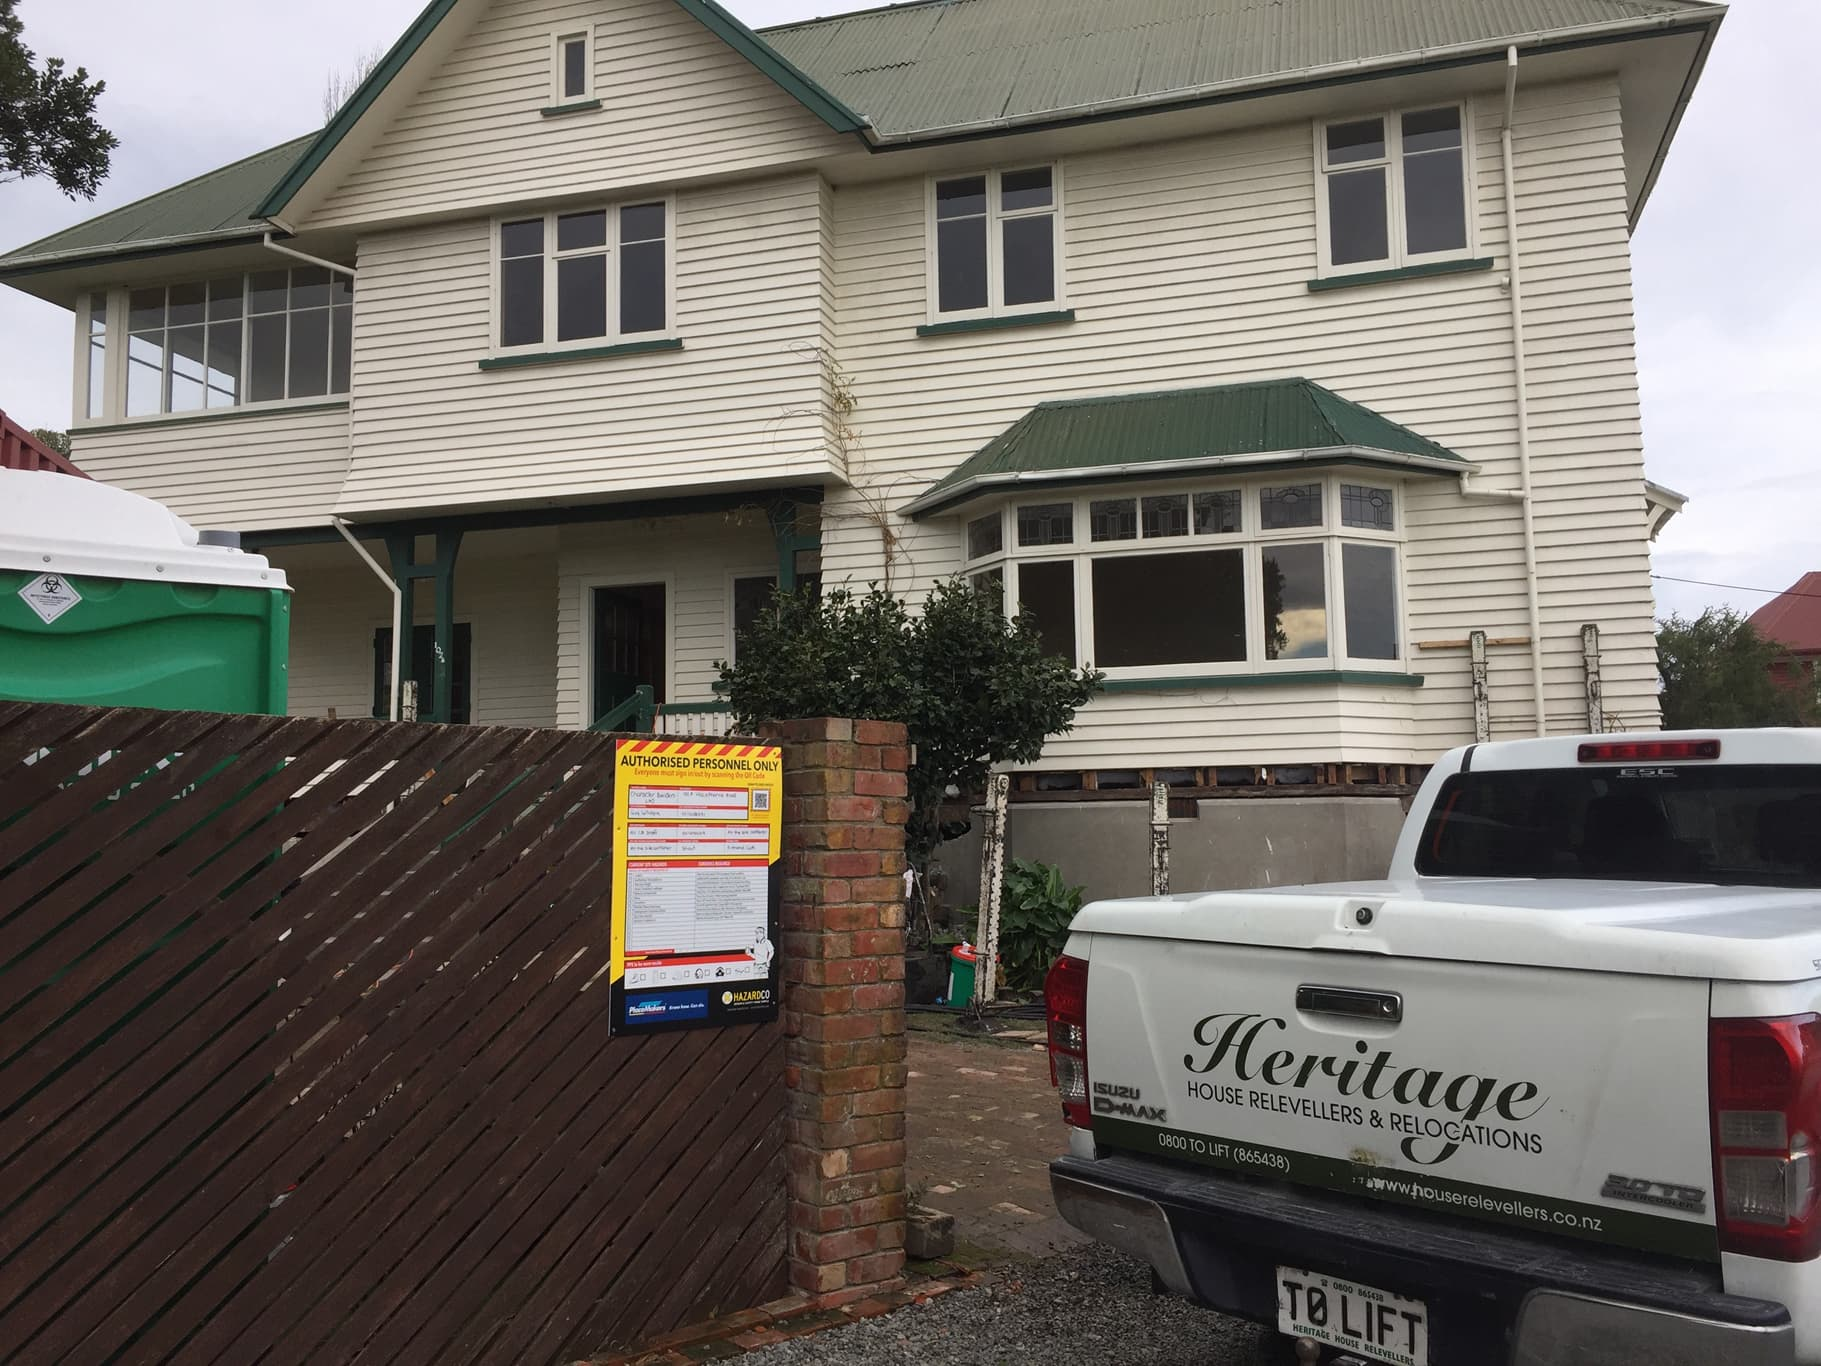 Heritage House Relevellers' foundation replacement service in Christchurch